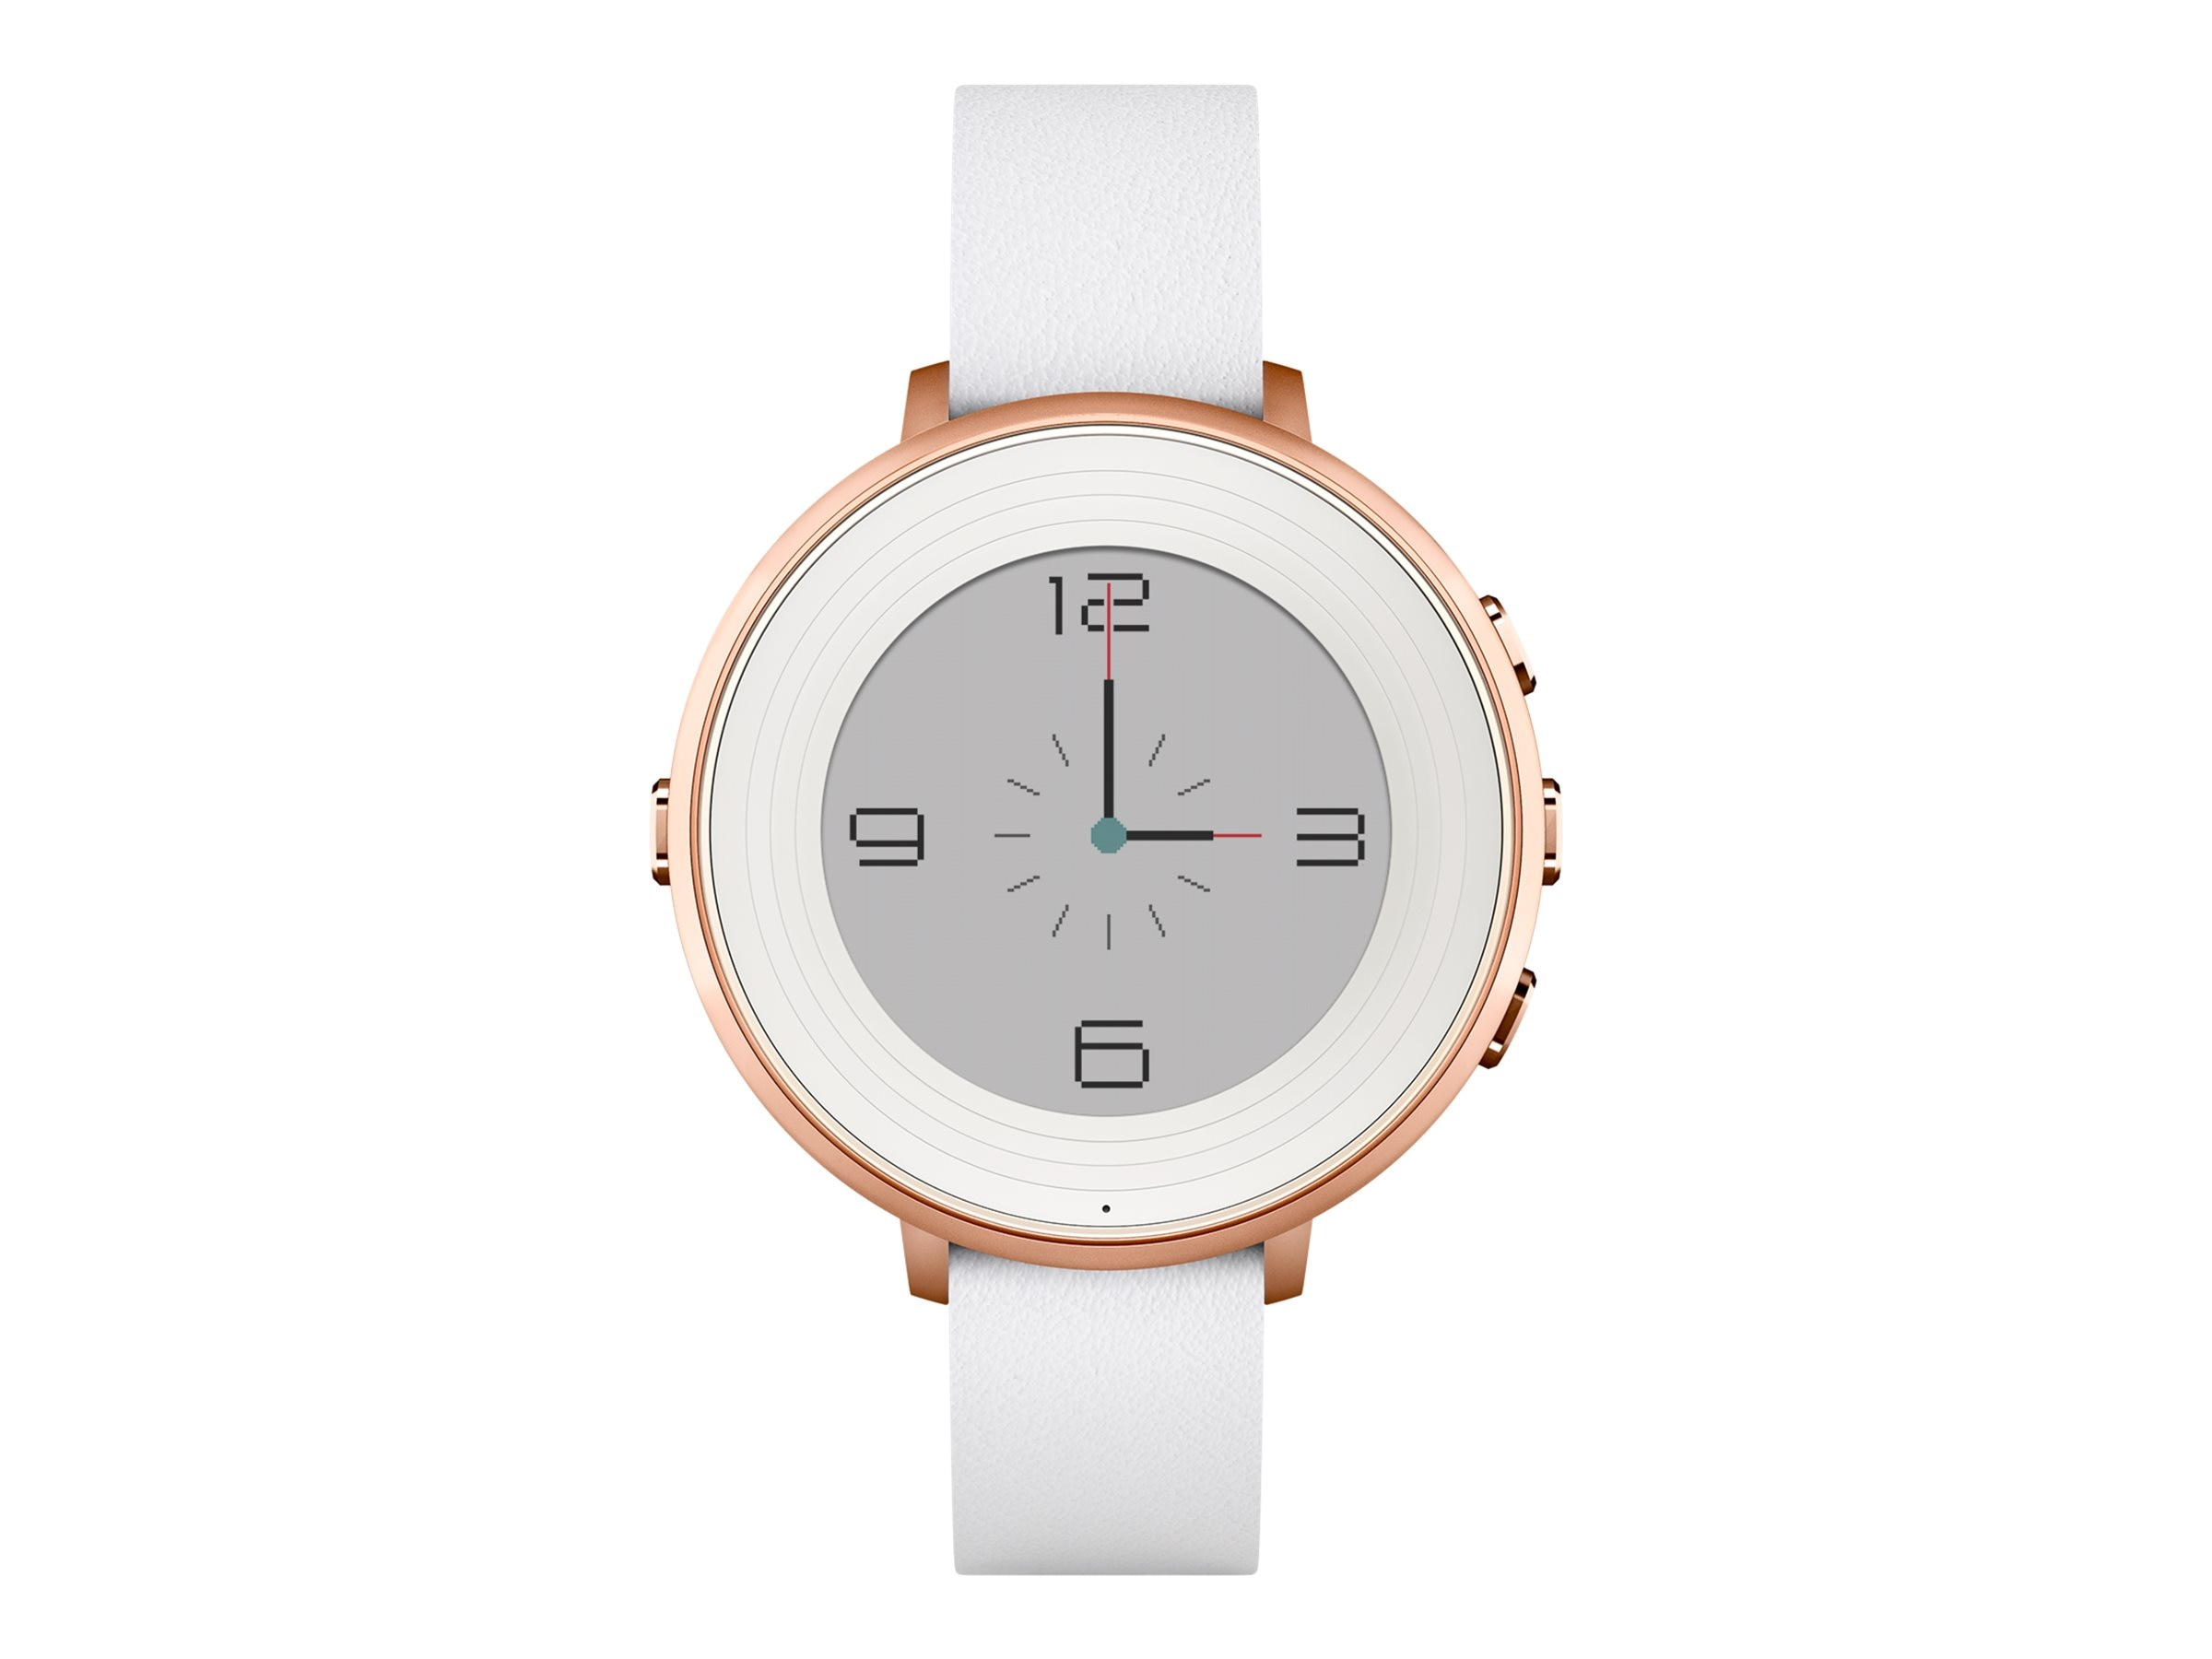 Pebble Round S4.0 Smartwatch, Rose Gold, 14mm, 601-00047